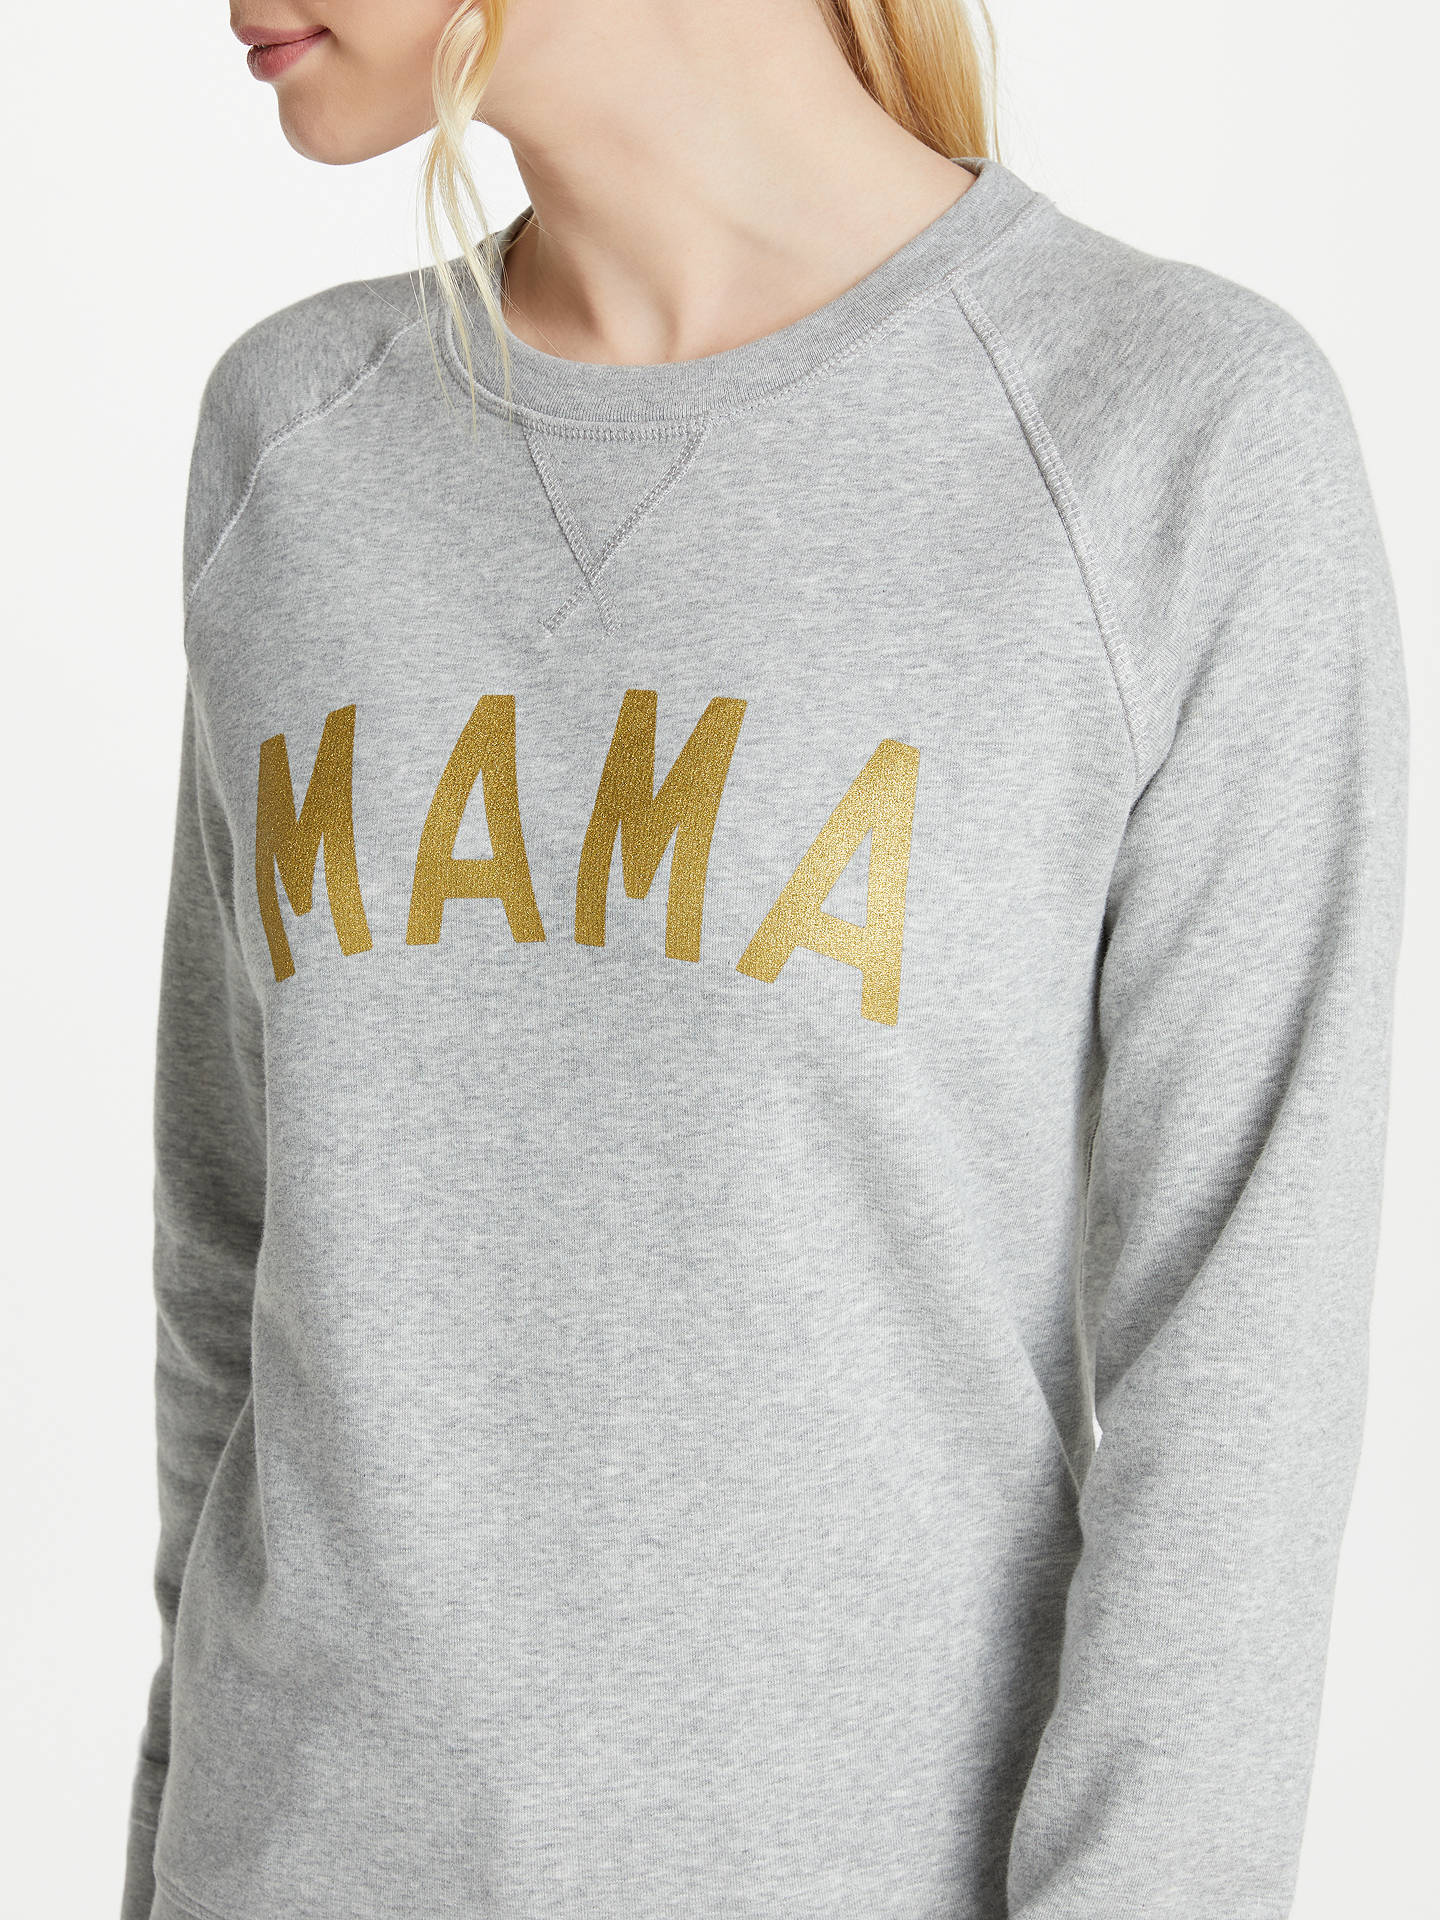 BuySelfish Mother Mama Crew Neck Sweatshirt, Grey/Gold, S Online at johnlewis.com